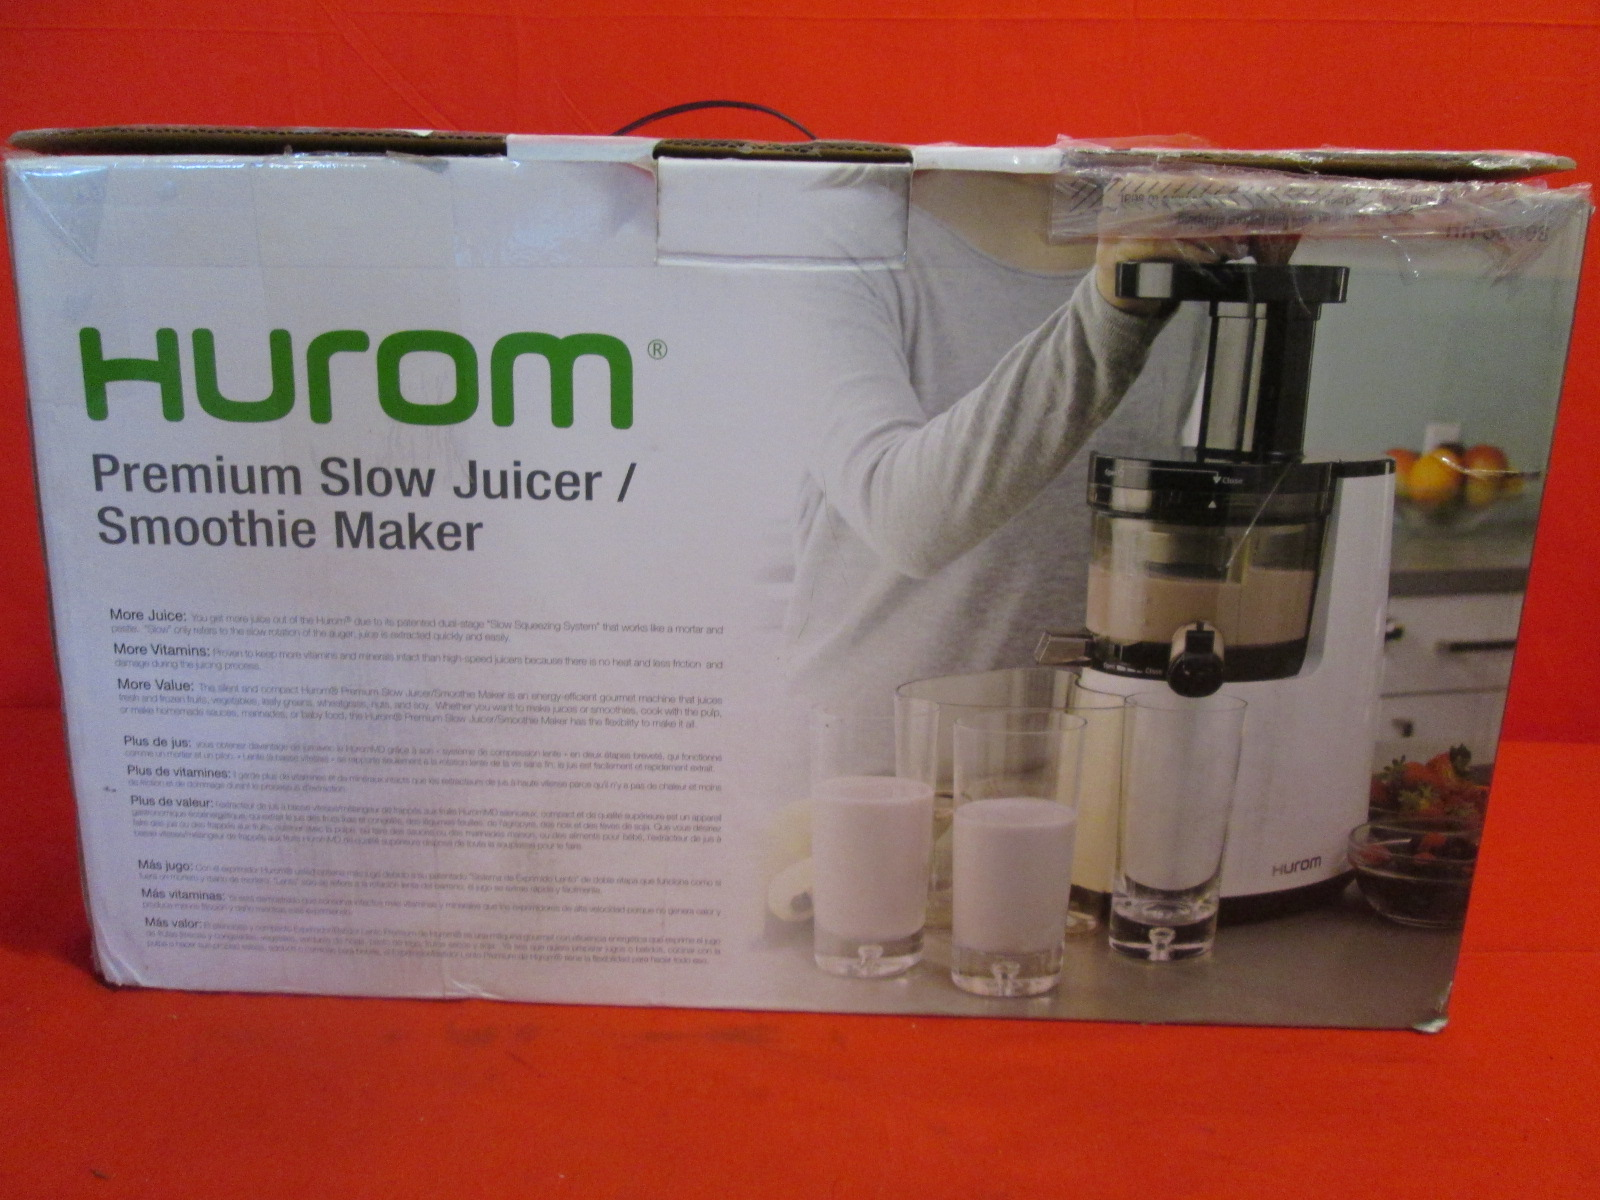 Hurom Premium Slow Juicer Review : Hurom Premium Masticating Slow Juicer & Smoothie Maker HH-WBB07